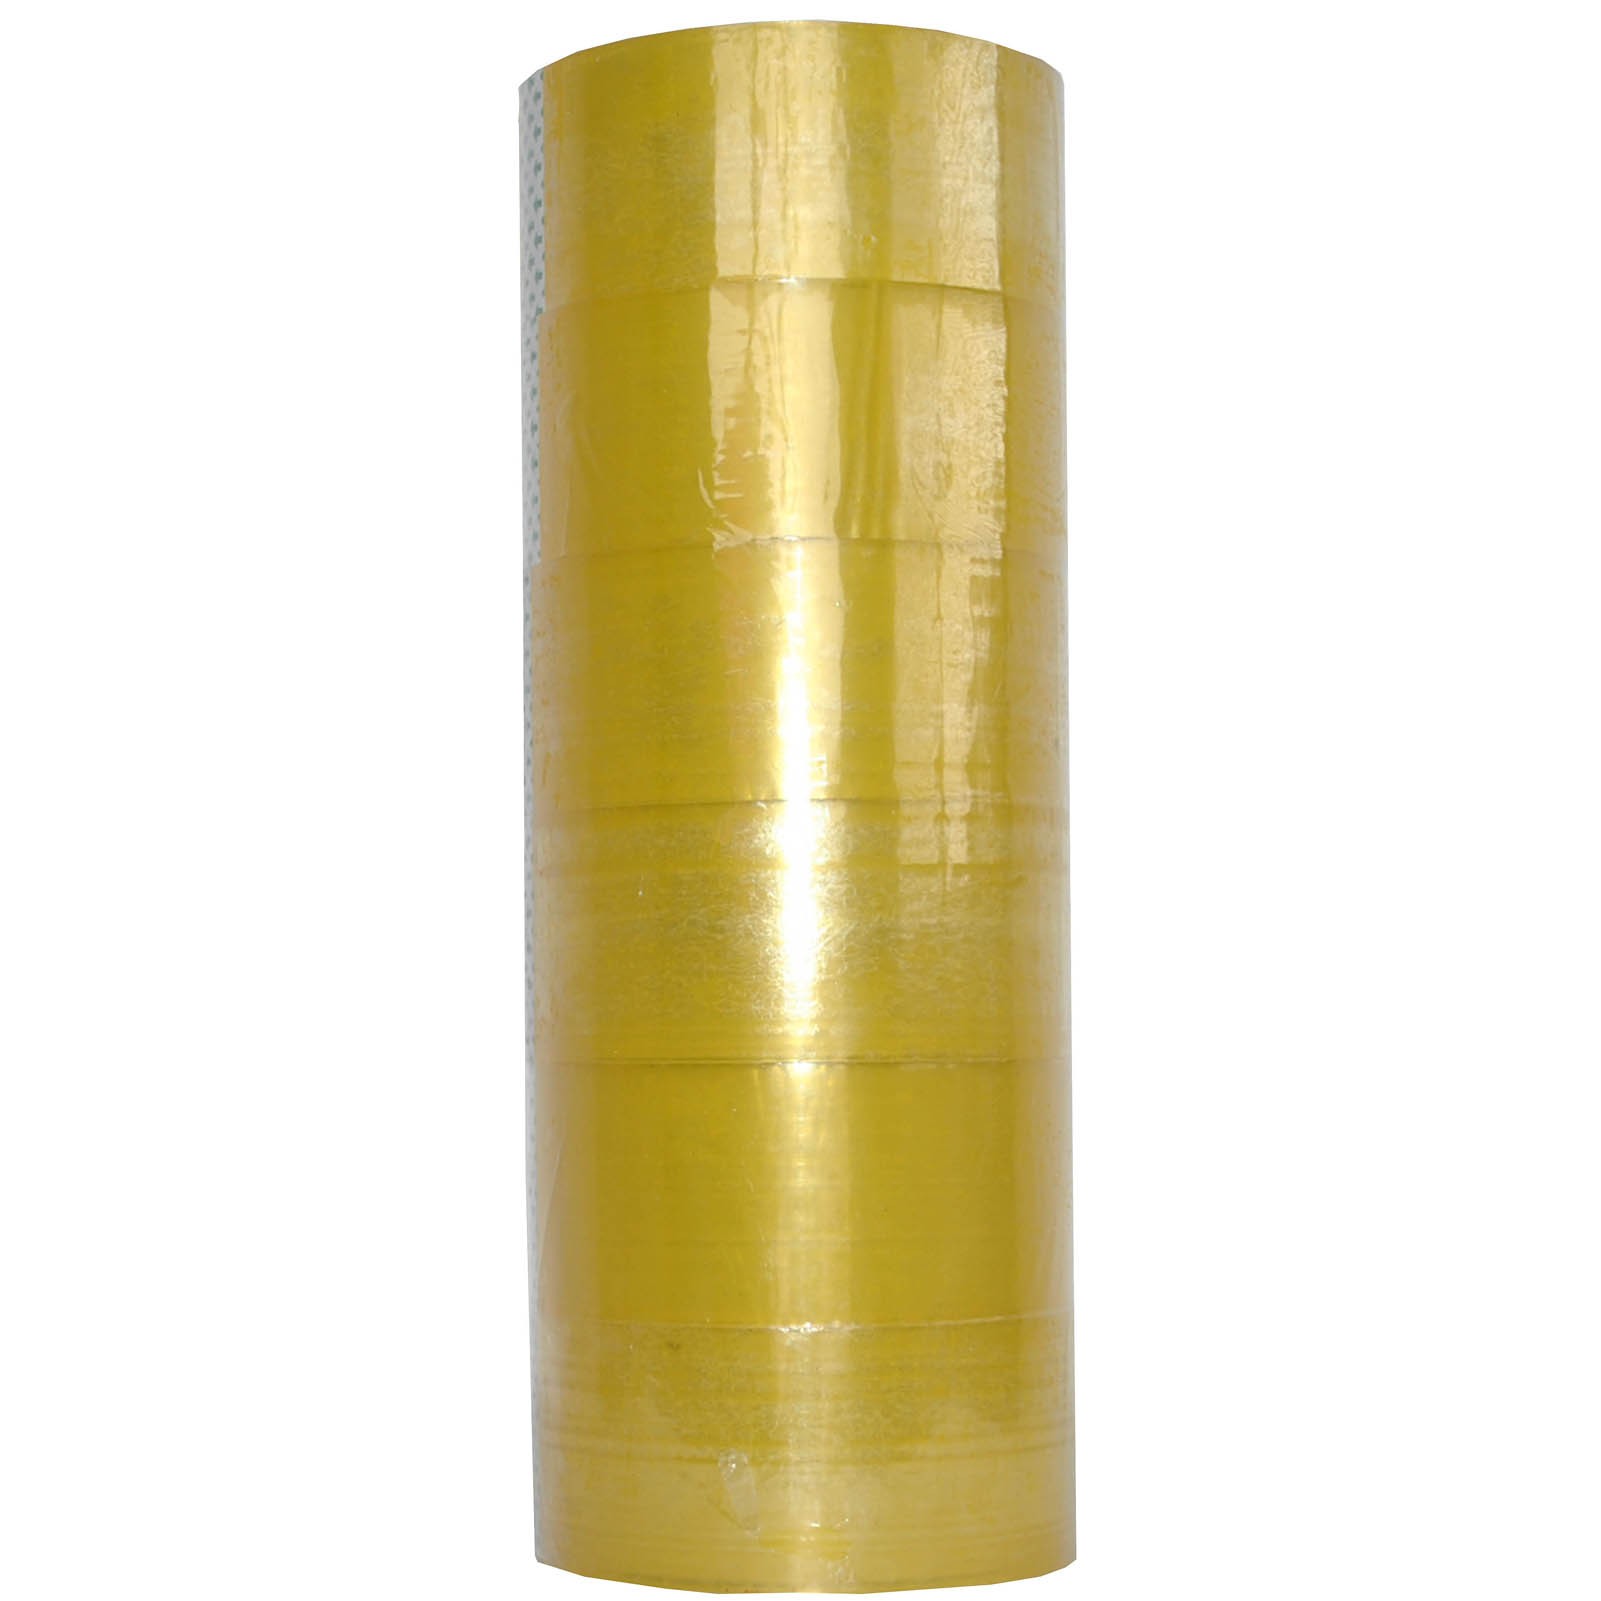 "Packing Tape, 2"" (47 mm) x 51 Yards, 6 Rolls, Transparent"